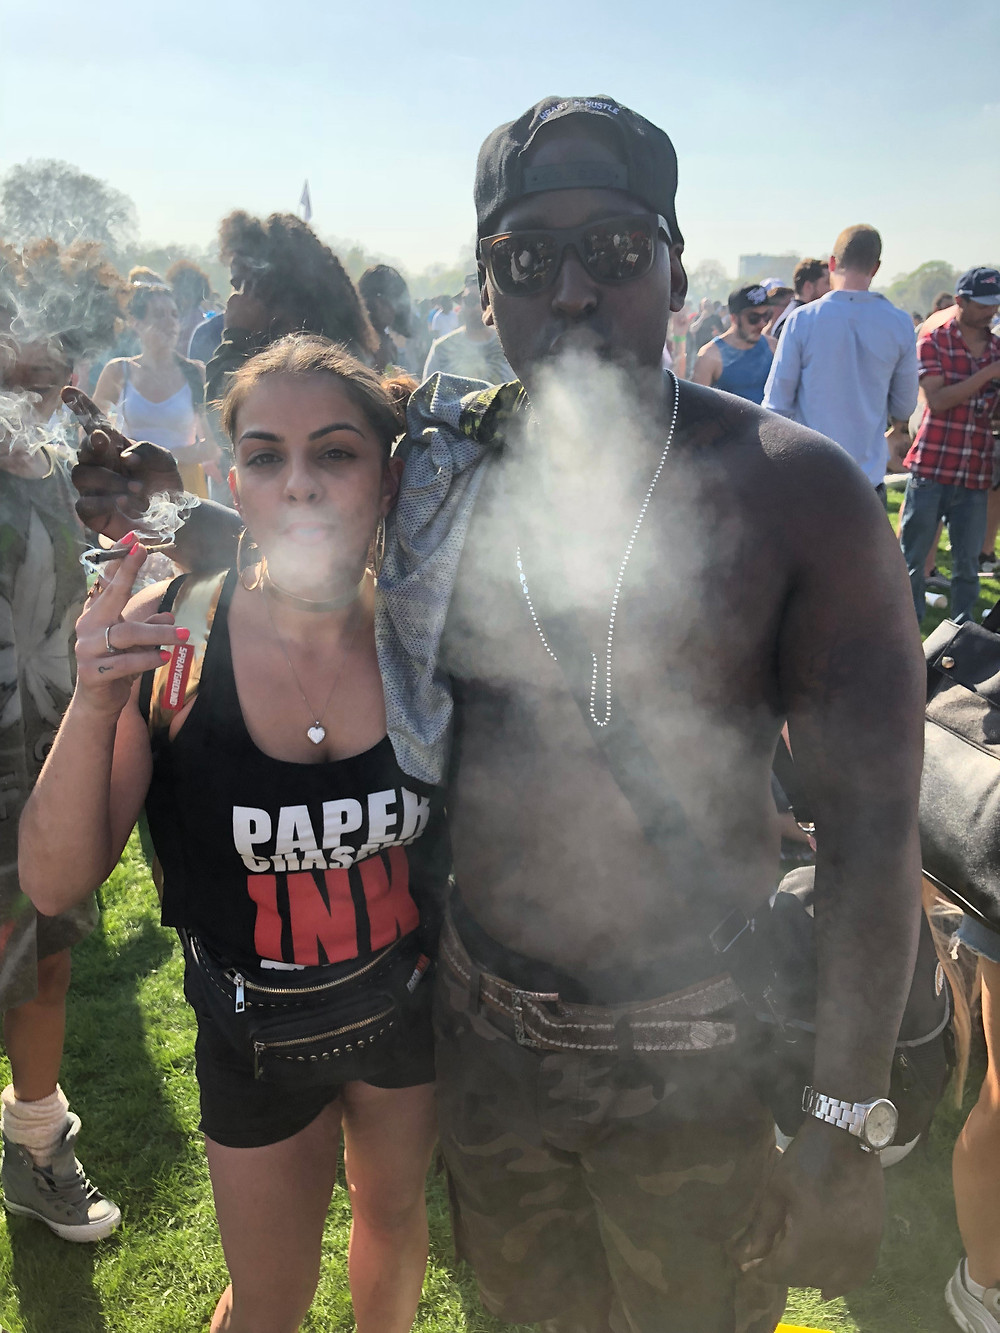 420 hyde park 2018, paperchasers inkIMG_0149